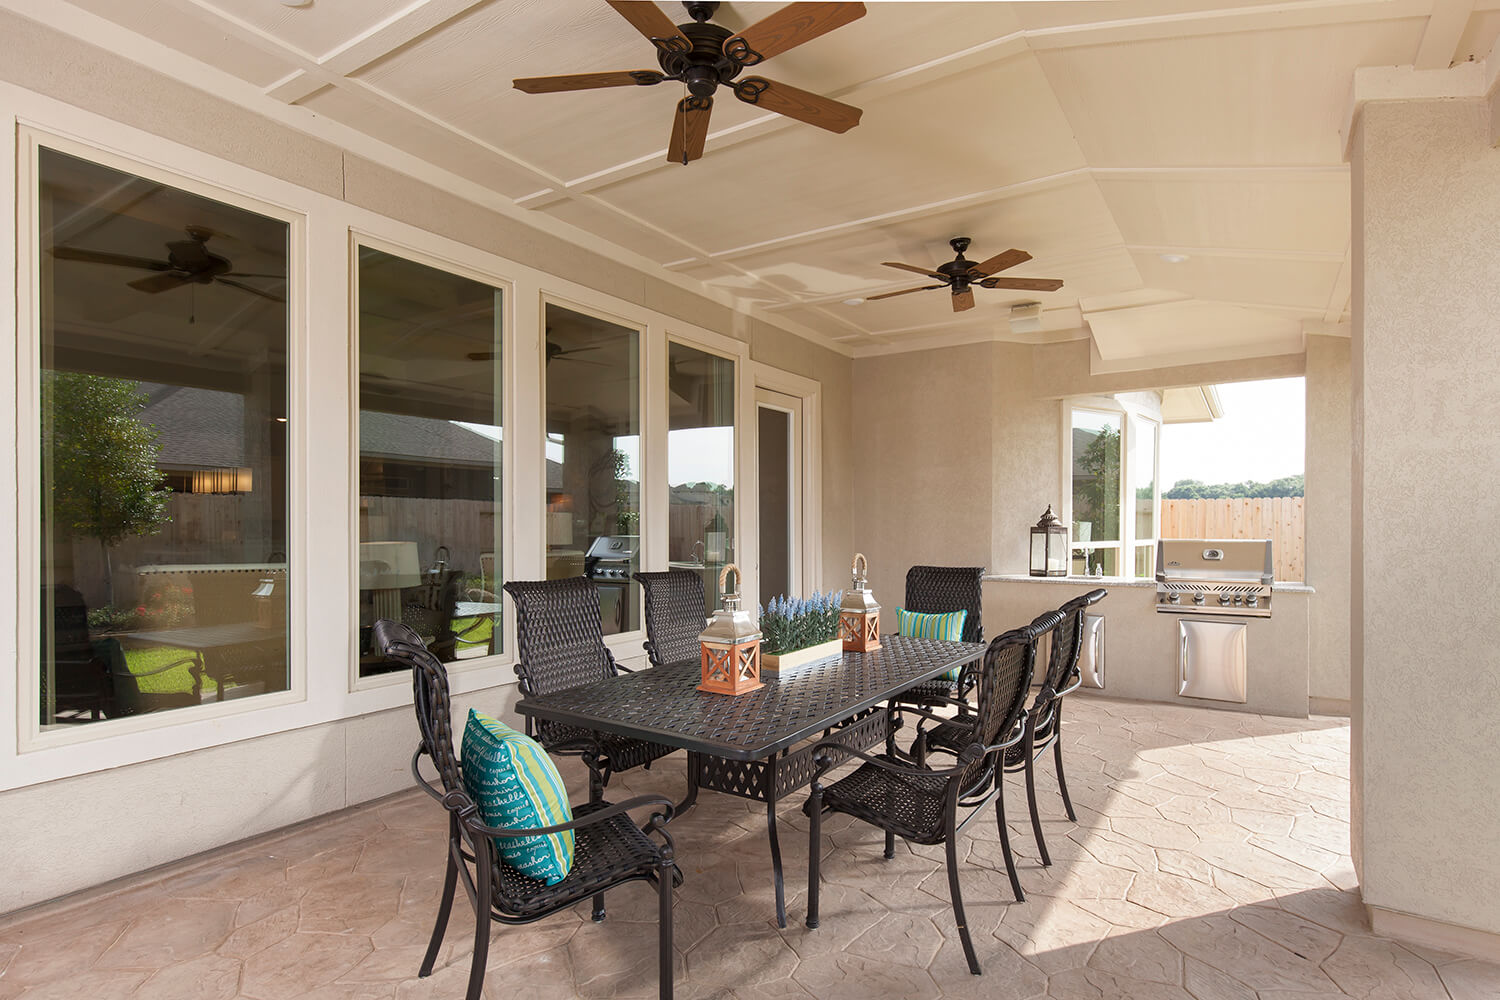 Covered Patio - The Katy (8264 Plan)